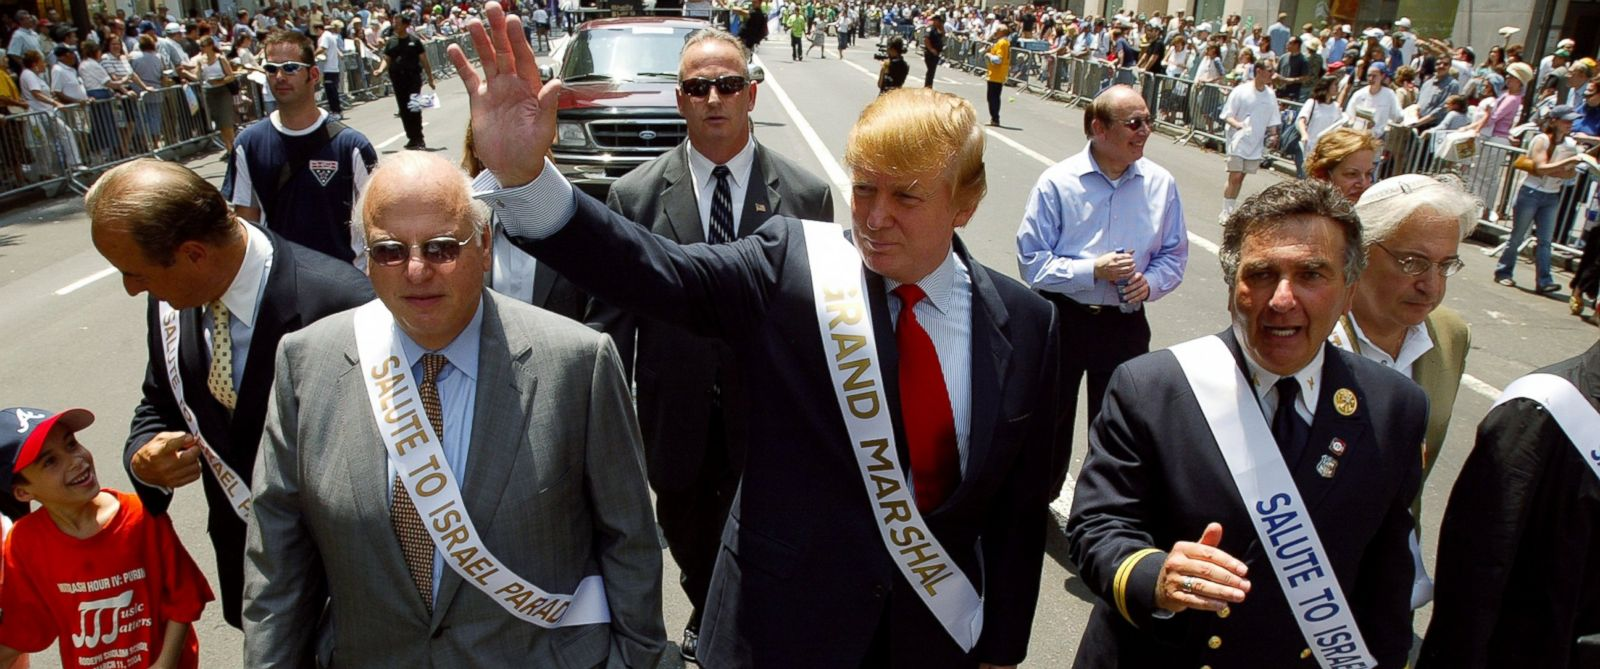 PHOTO: Grand Marshal Donald Trump marches in the Salute to Israel Parade on Fifth Ave., May 23, 2004.